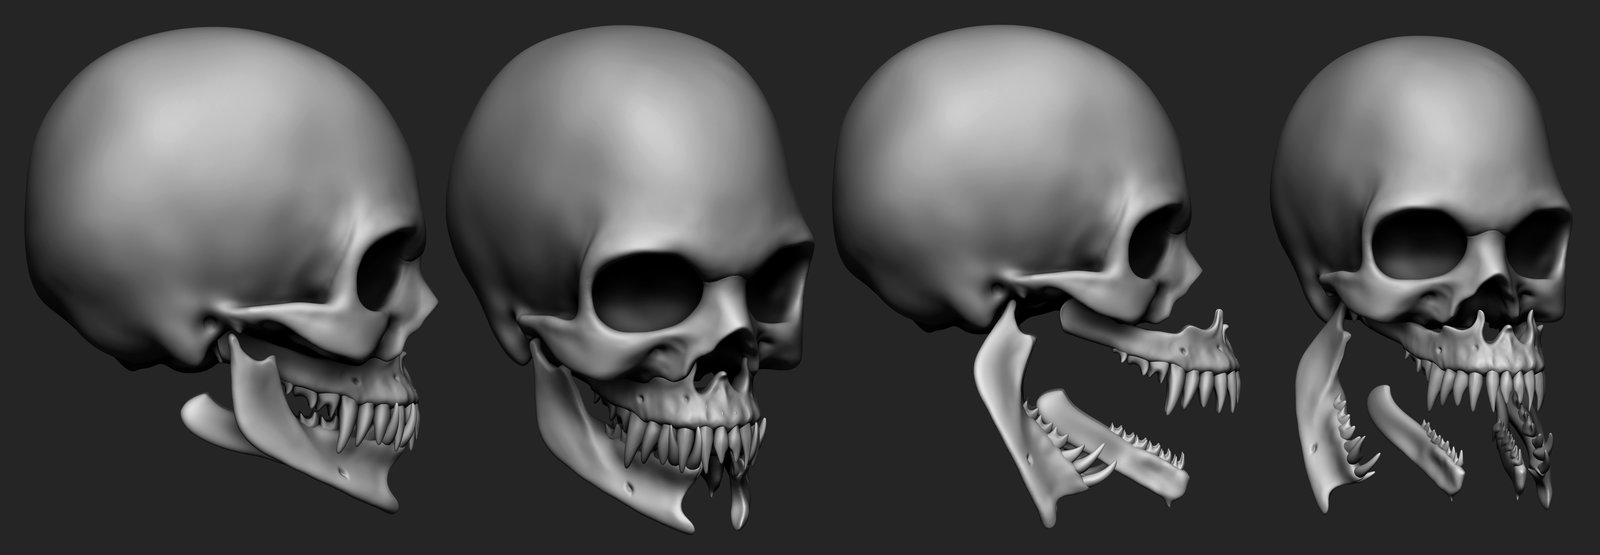 This was the hybrid cross of snake skull and human skull that seemed like a logical function to Mileena.